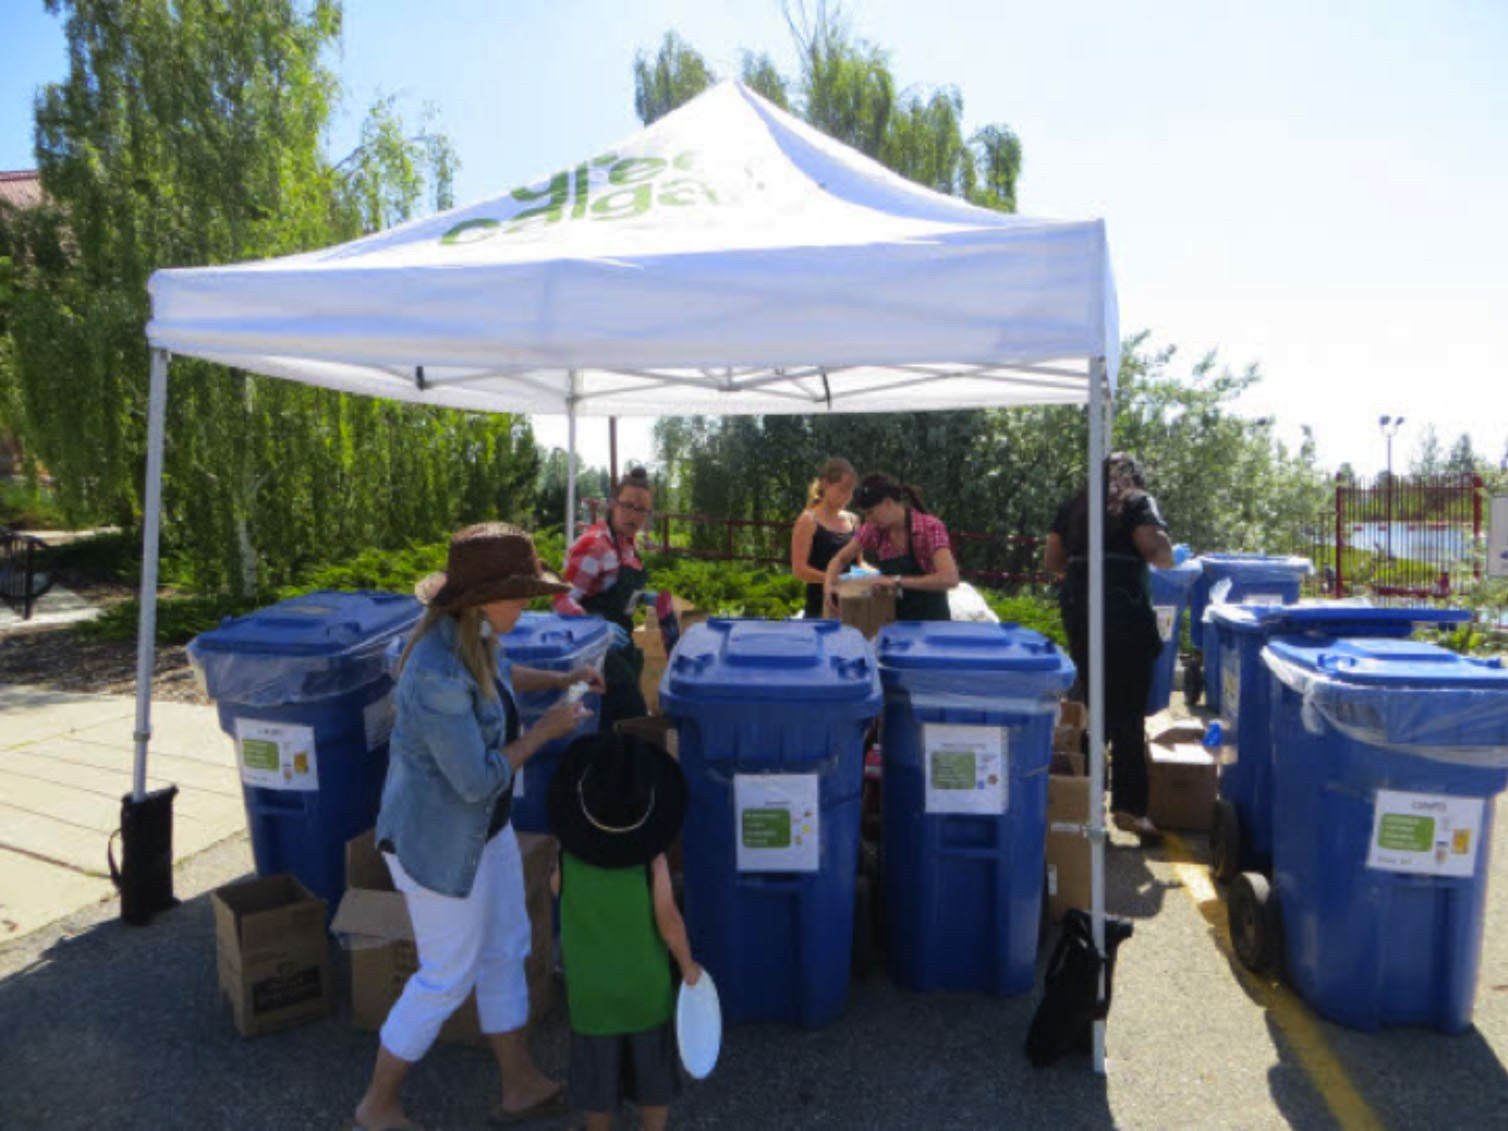 Waste diversion was up 10% over last year even as event attendance was up 25%